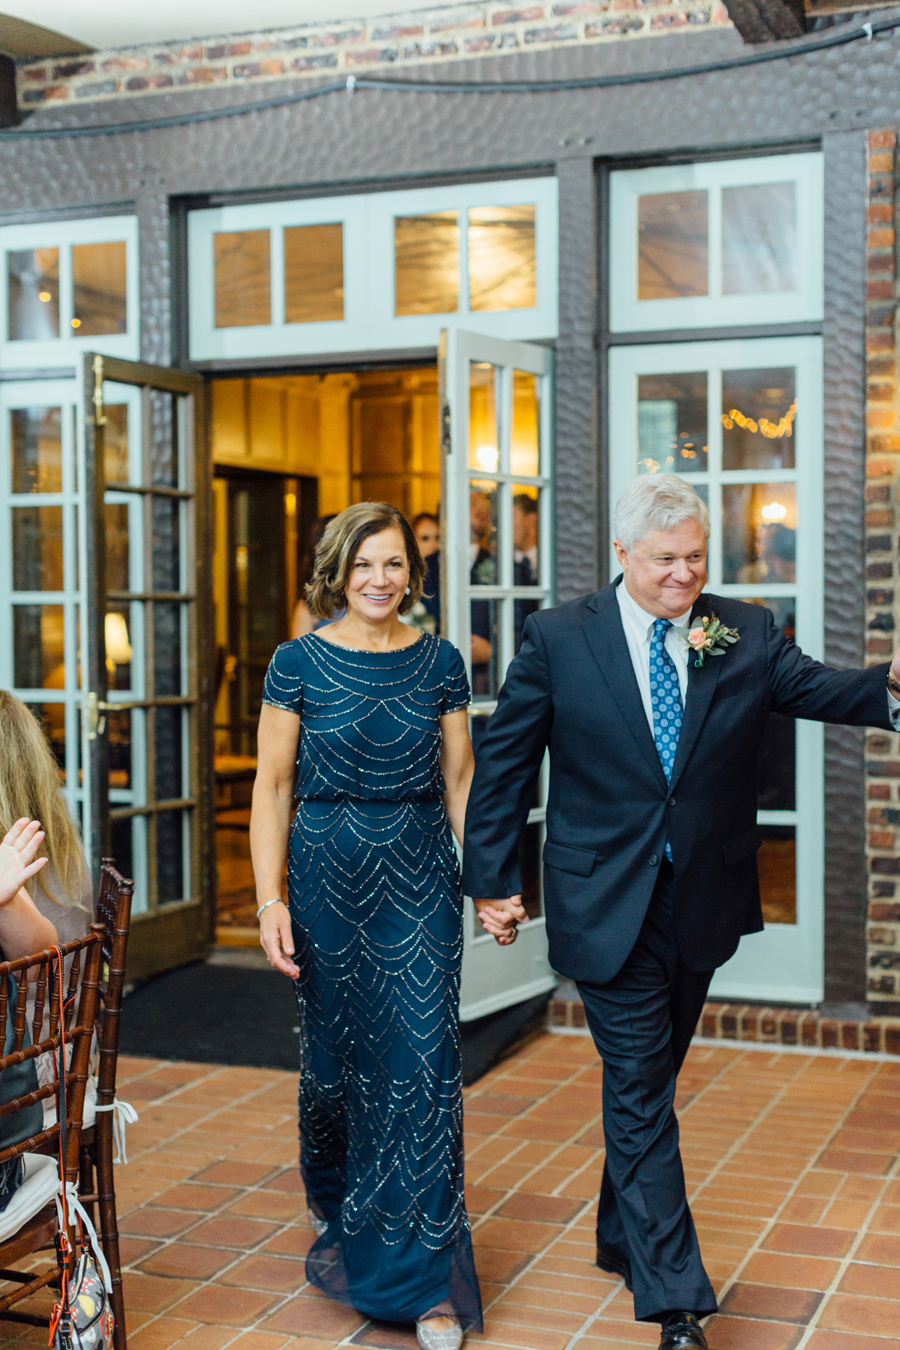 greenville-country-club-wedding-philadelphia-wedding-photographer-rebekah-viola-photography (141).jpg